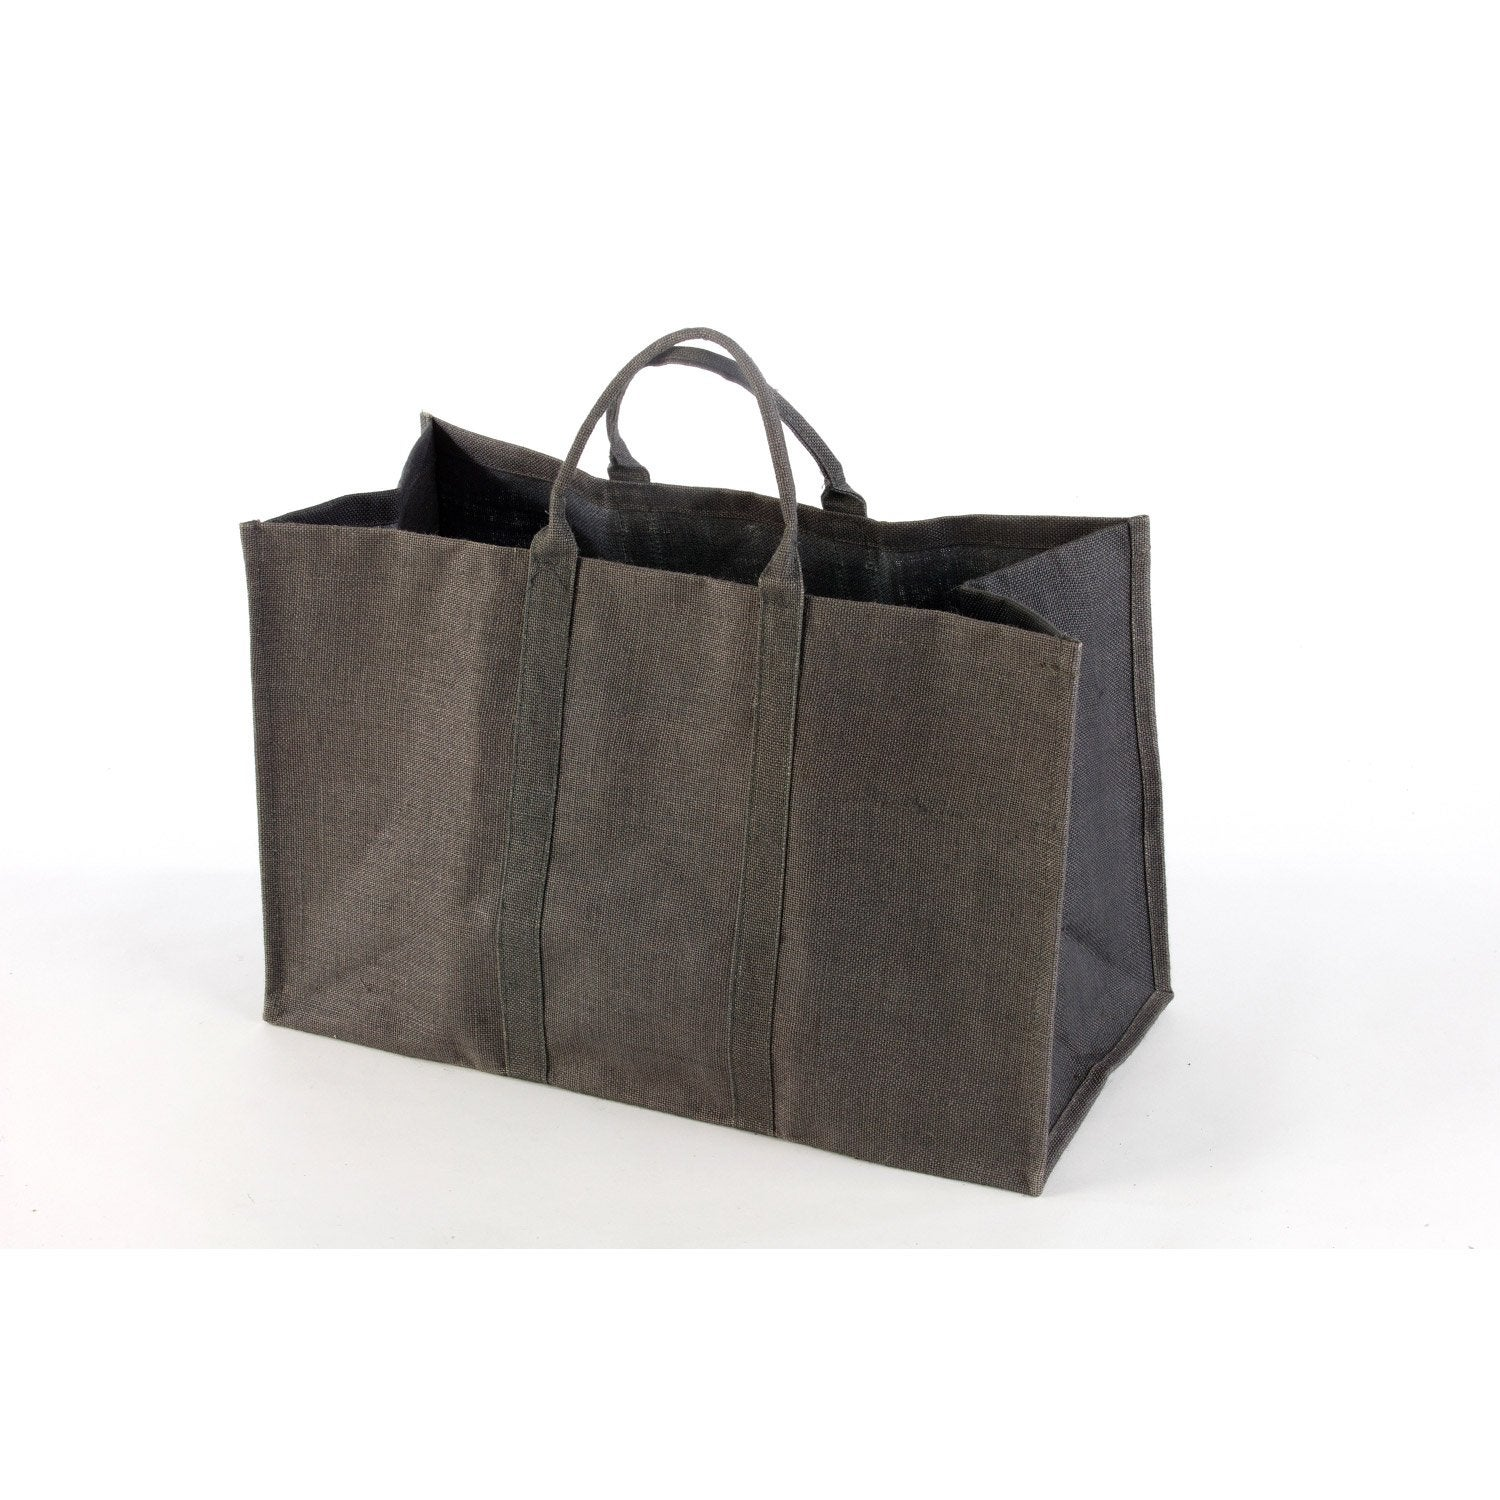 Sac B Ches Gris Atelier Dixneuf Natureo L 63 X H 41 Cm Leroy Merlin